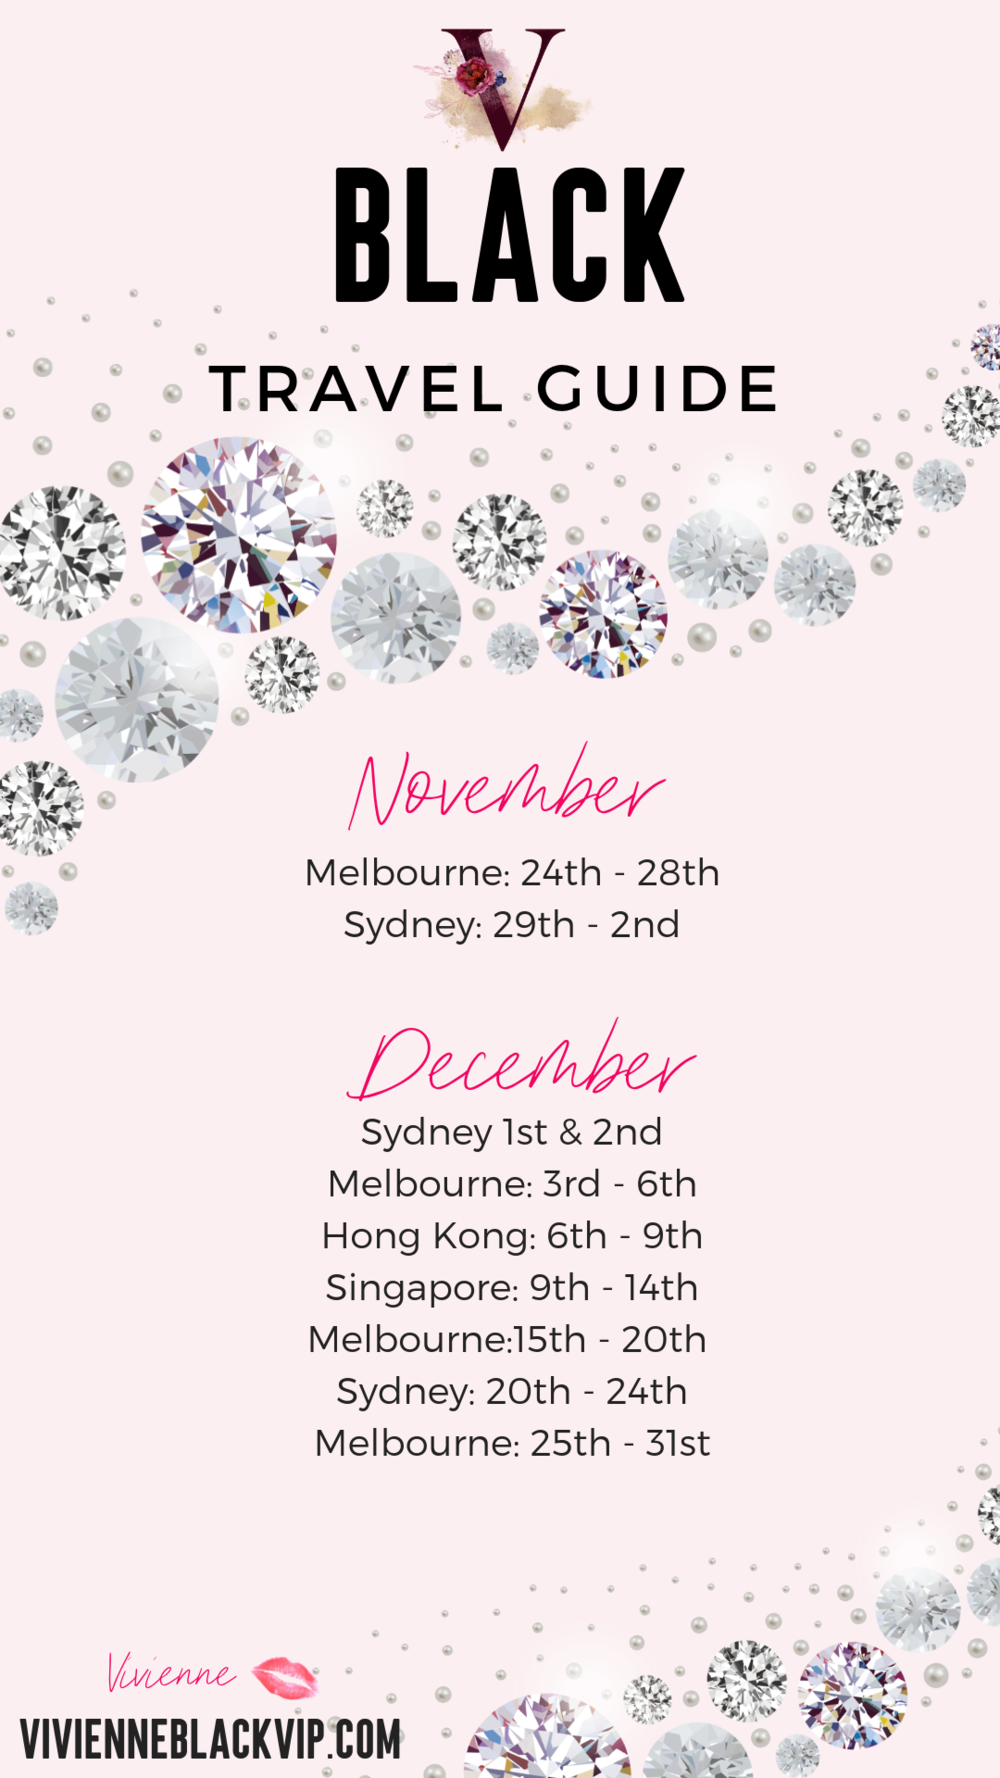 Book-Now-Singapore-Tour-New-Dates-December-9th-14th-2018-image-2